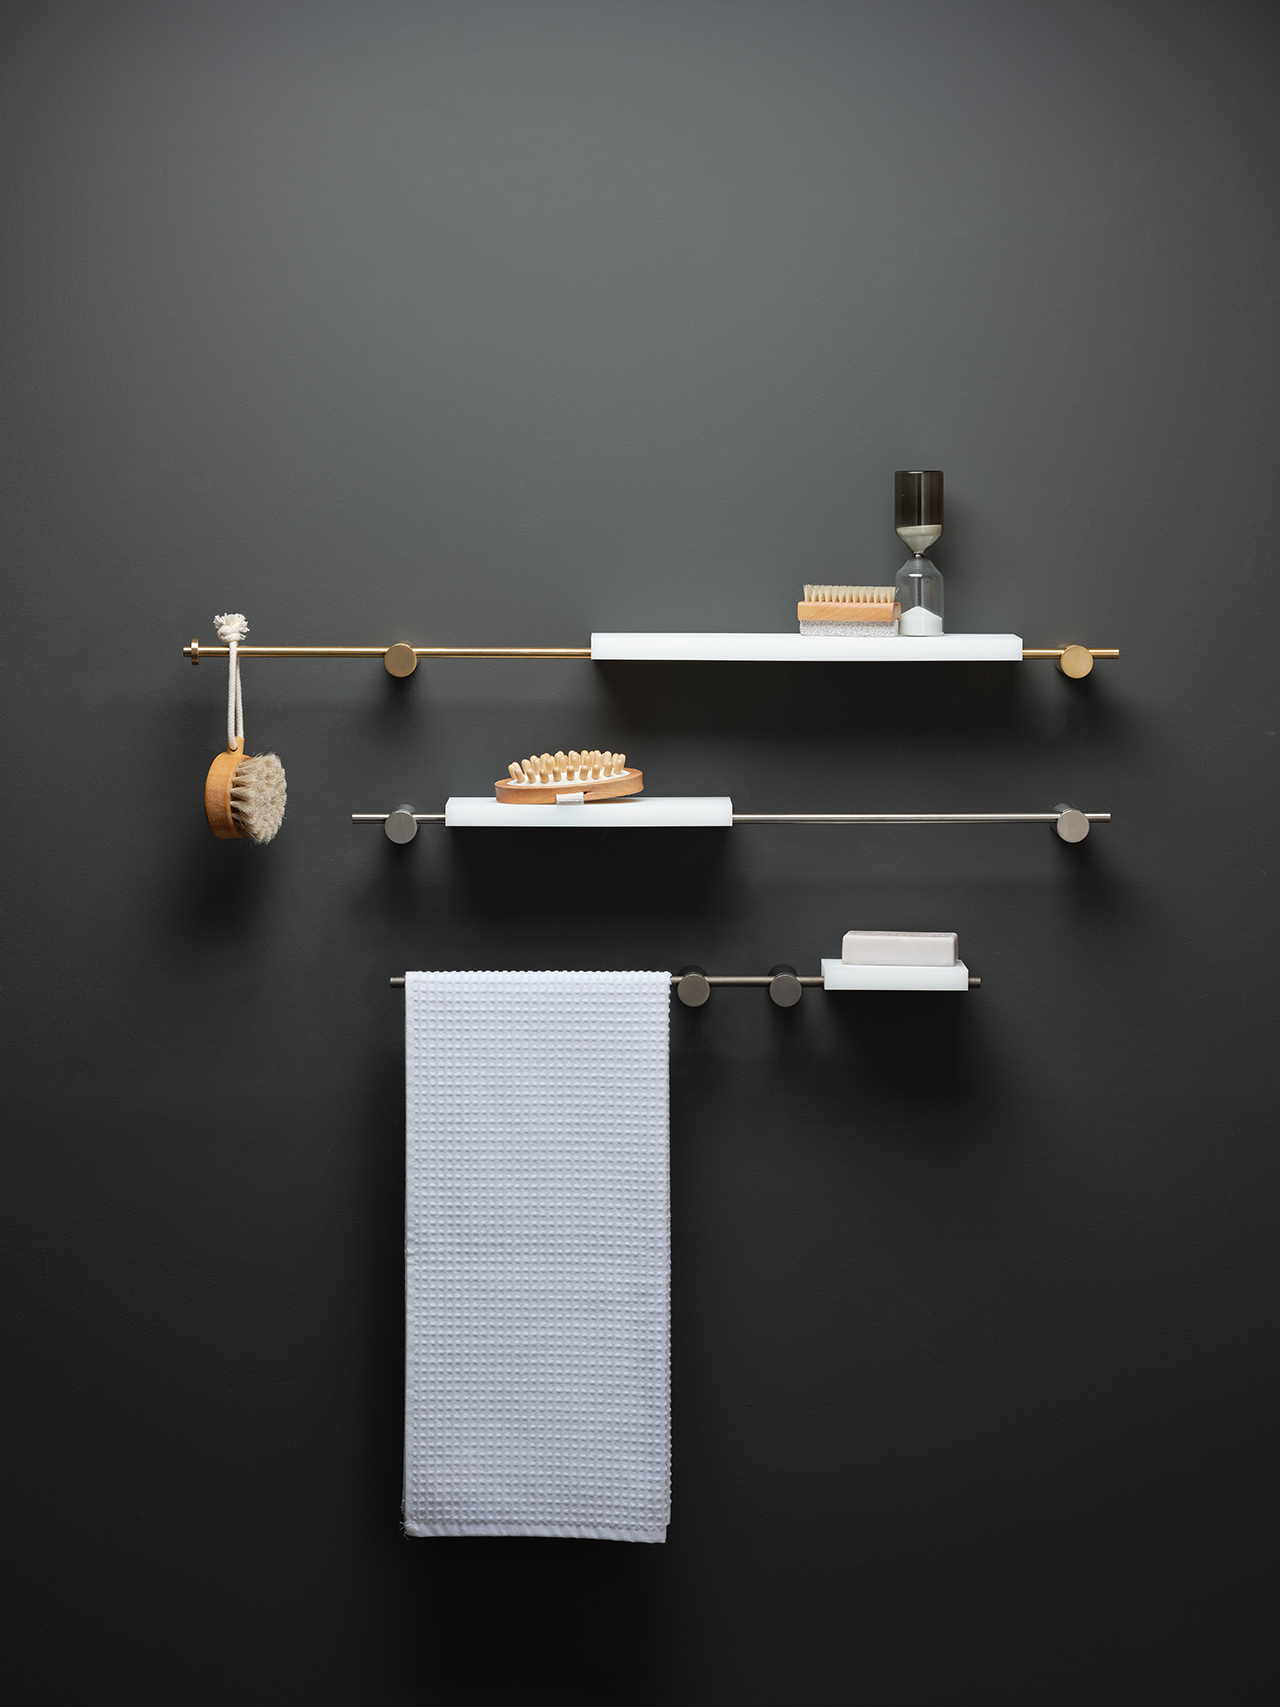 modern bath accessories and shelves hanging on black wall